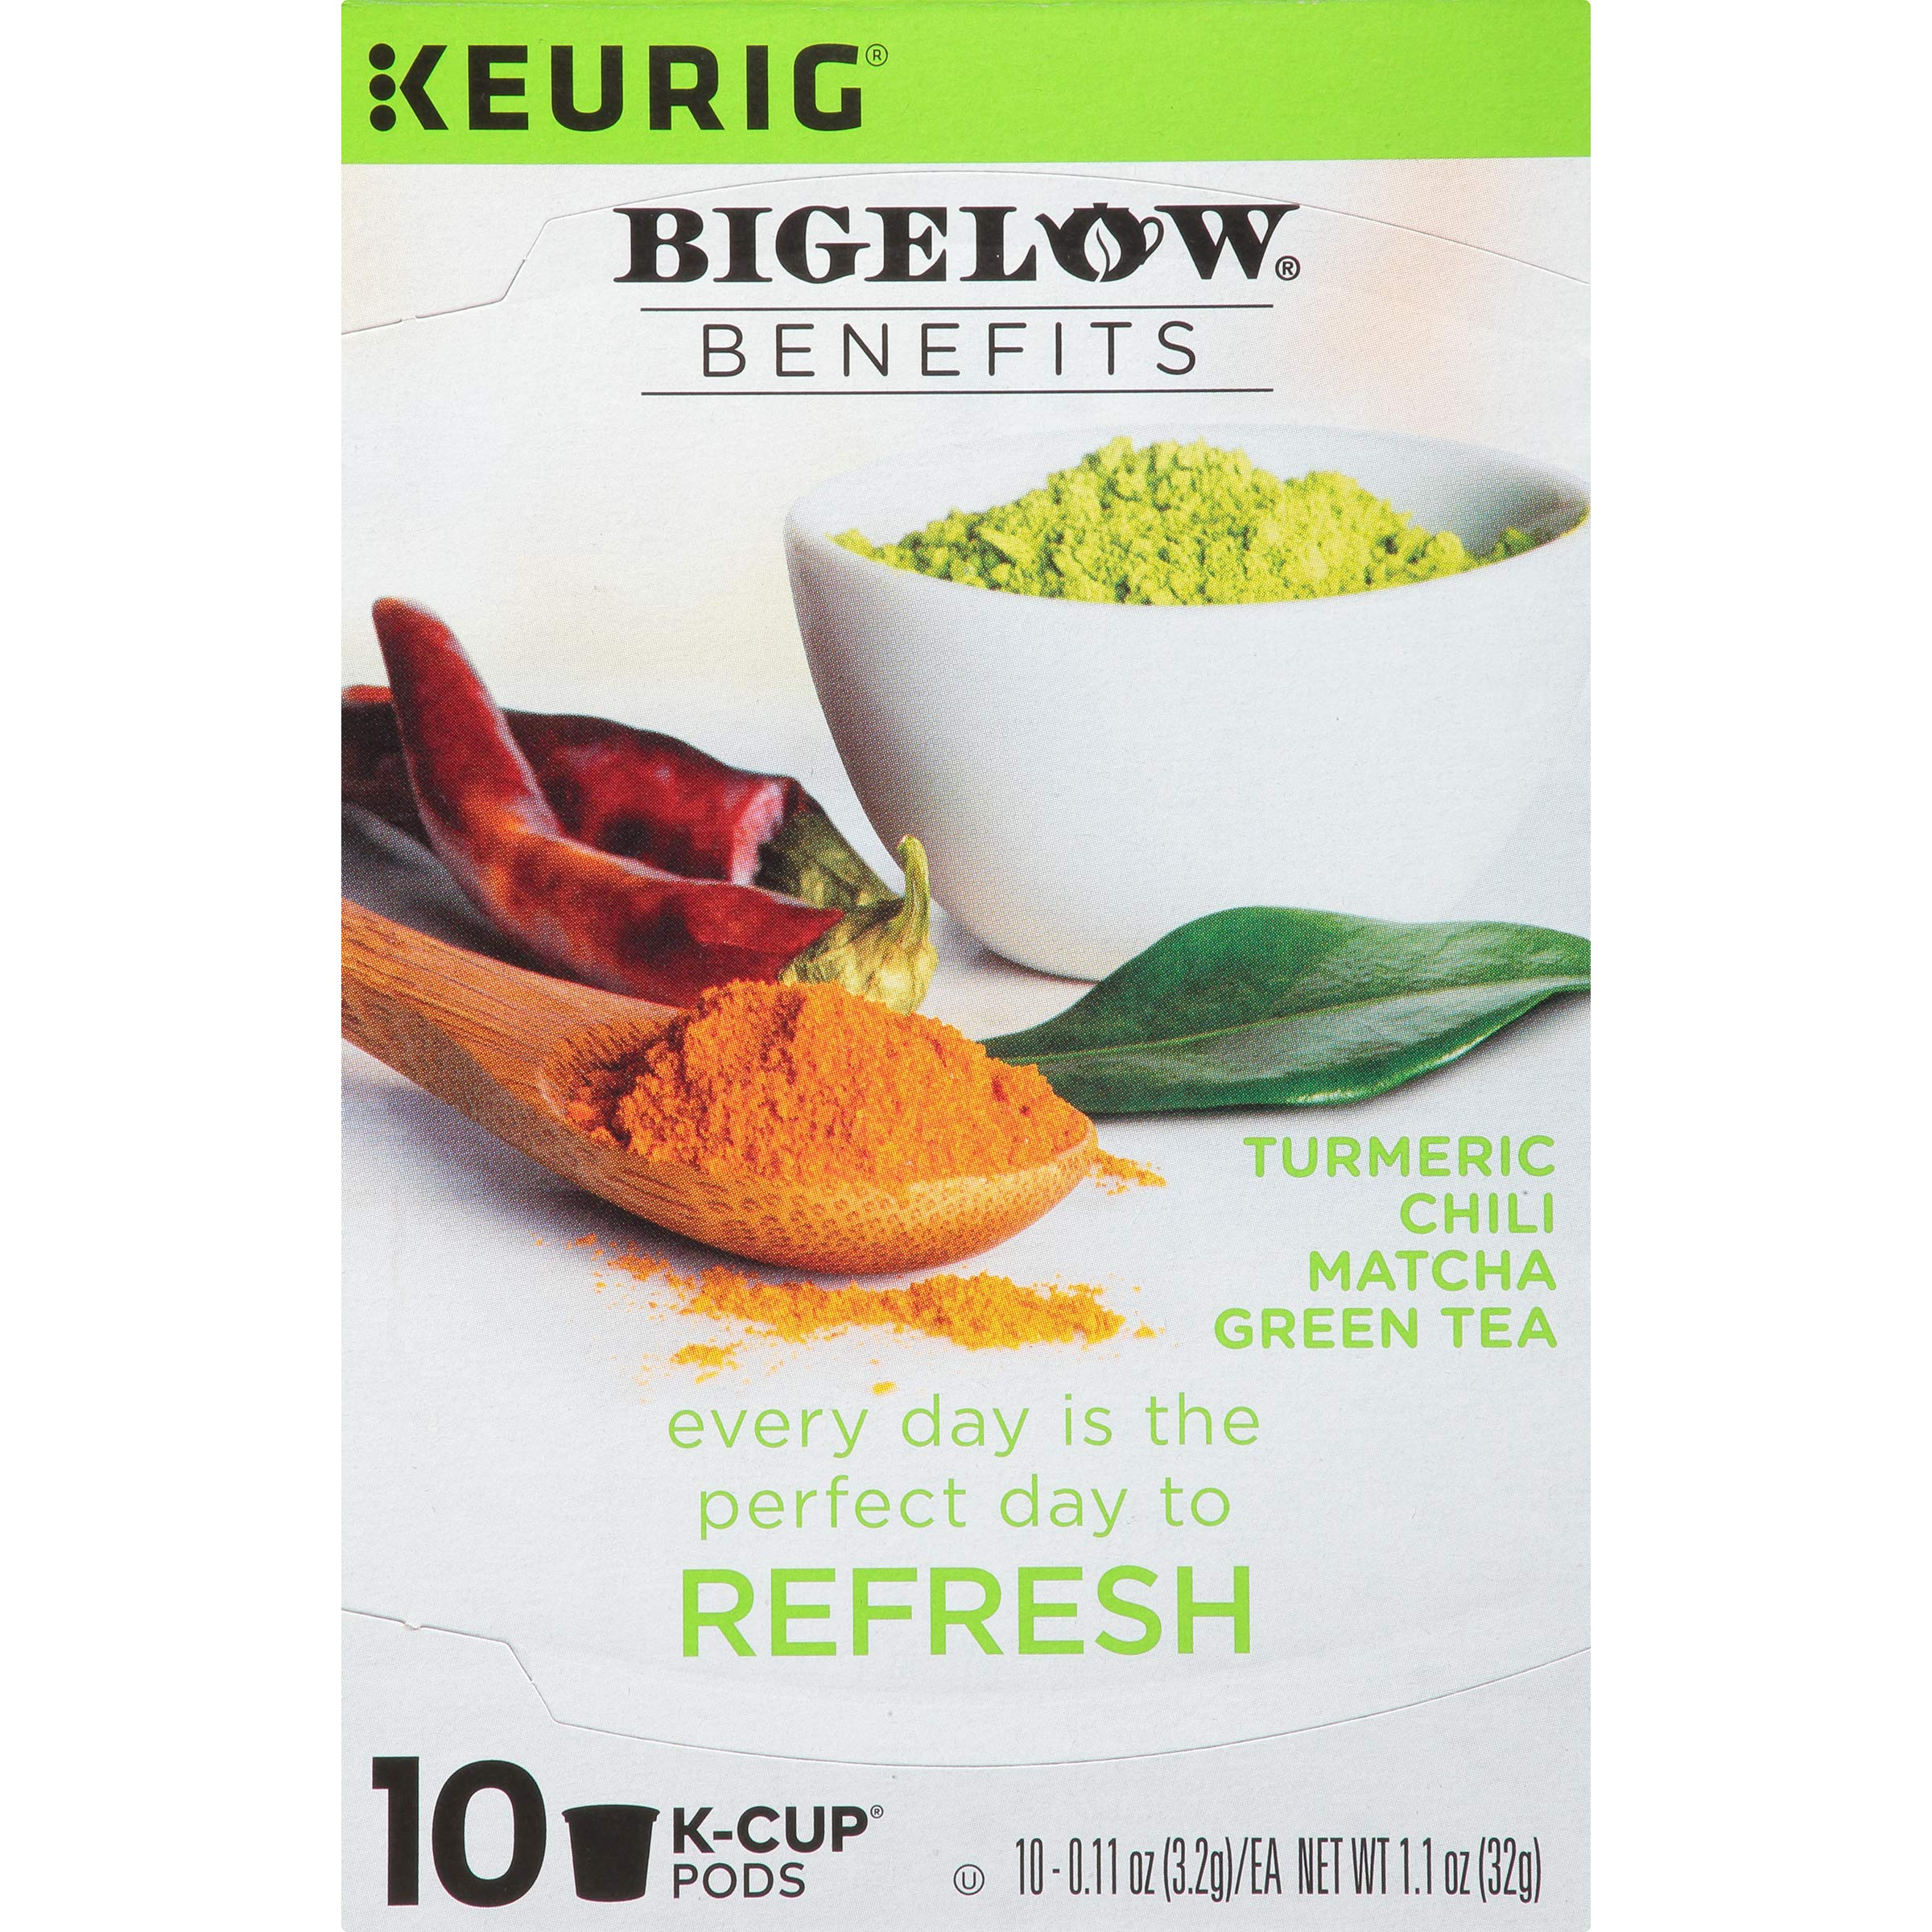 Bigelow Benefits Tumeric Chili Matcha Tea K-Cups, Refresh, 10 Count (Pack of 6) by Bigelow